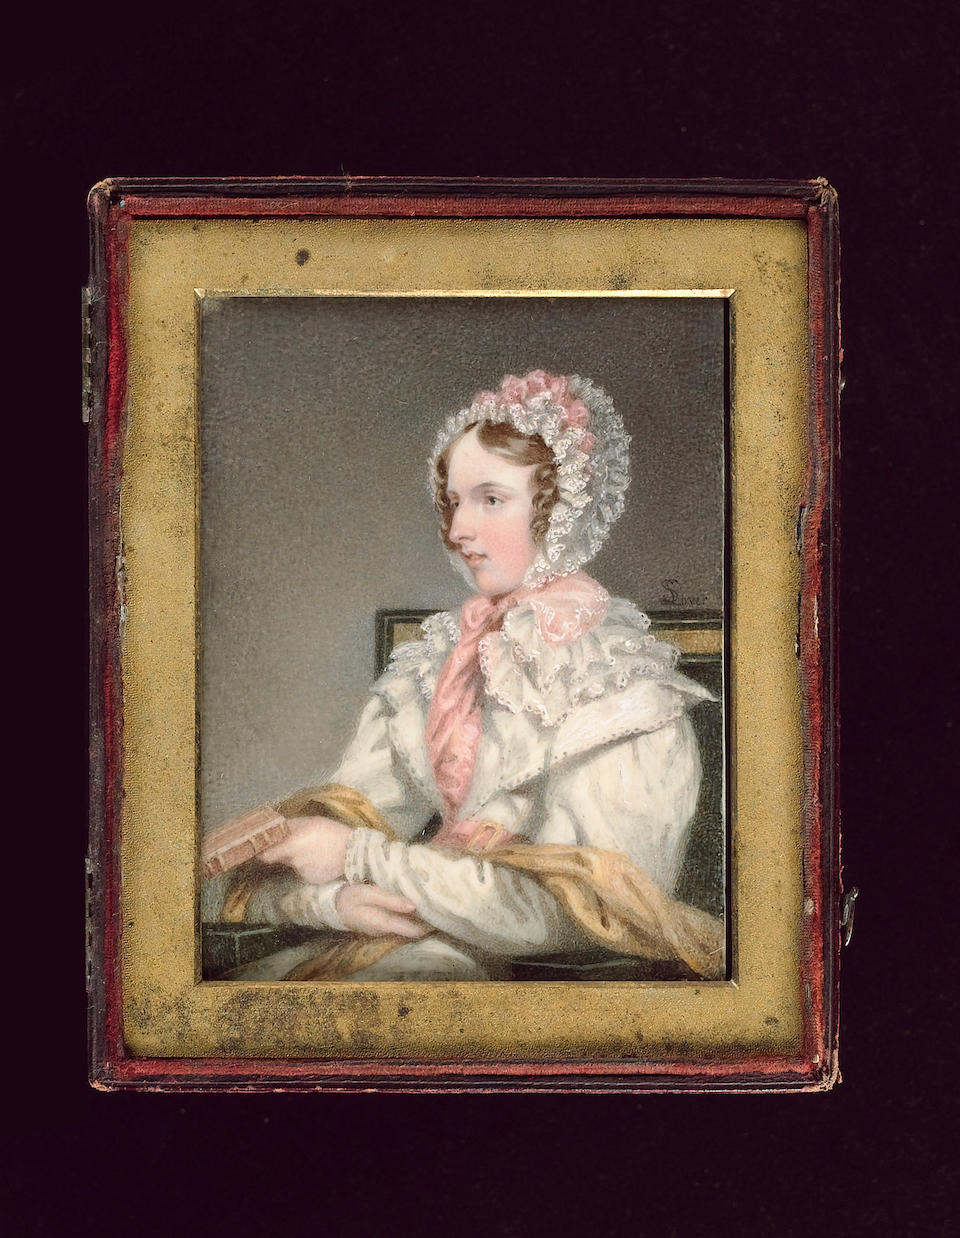 Samuel Lover, R.H.A., A Lady, seated, wearing white dress with layered lace collar, matching bonnet